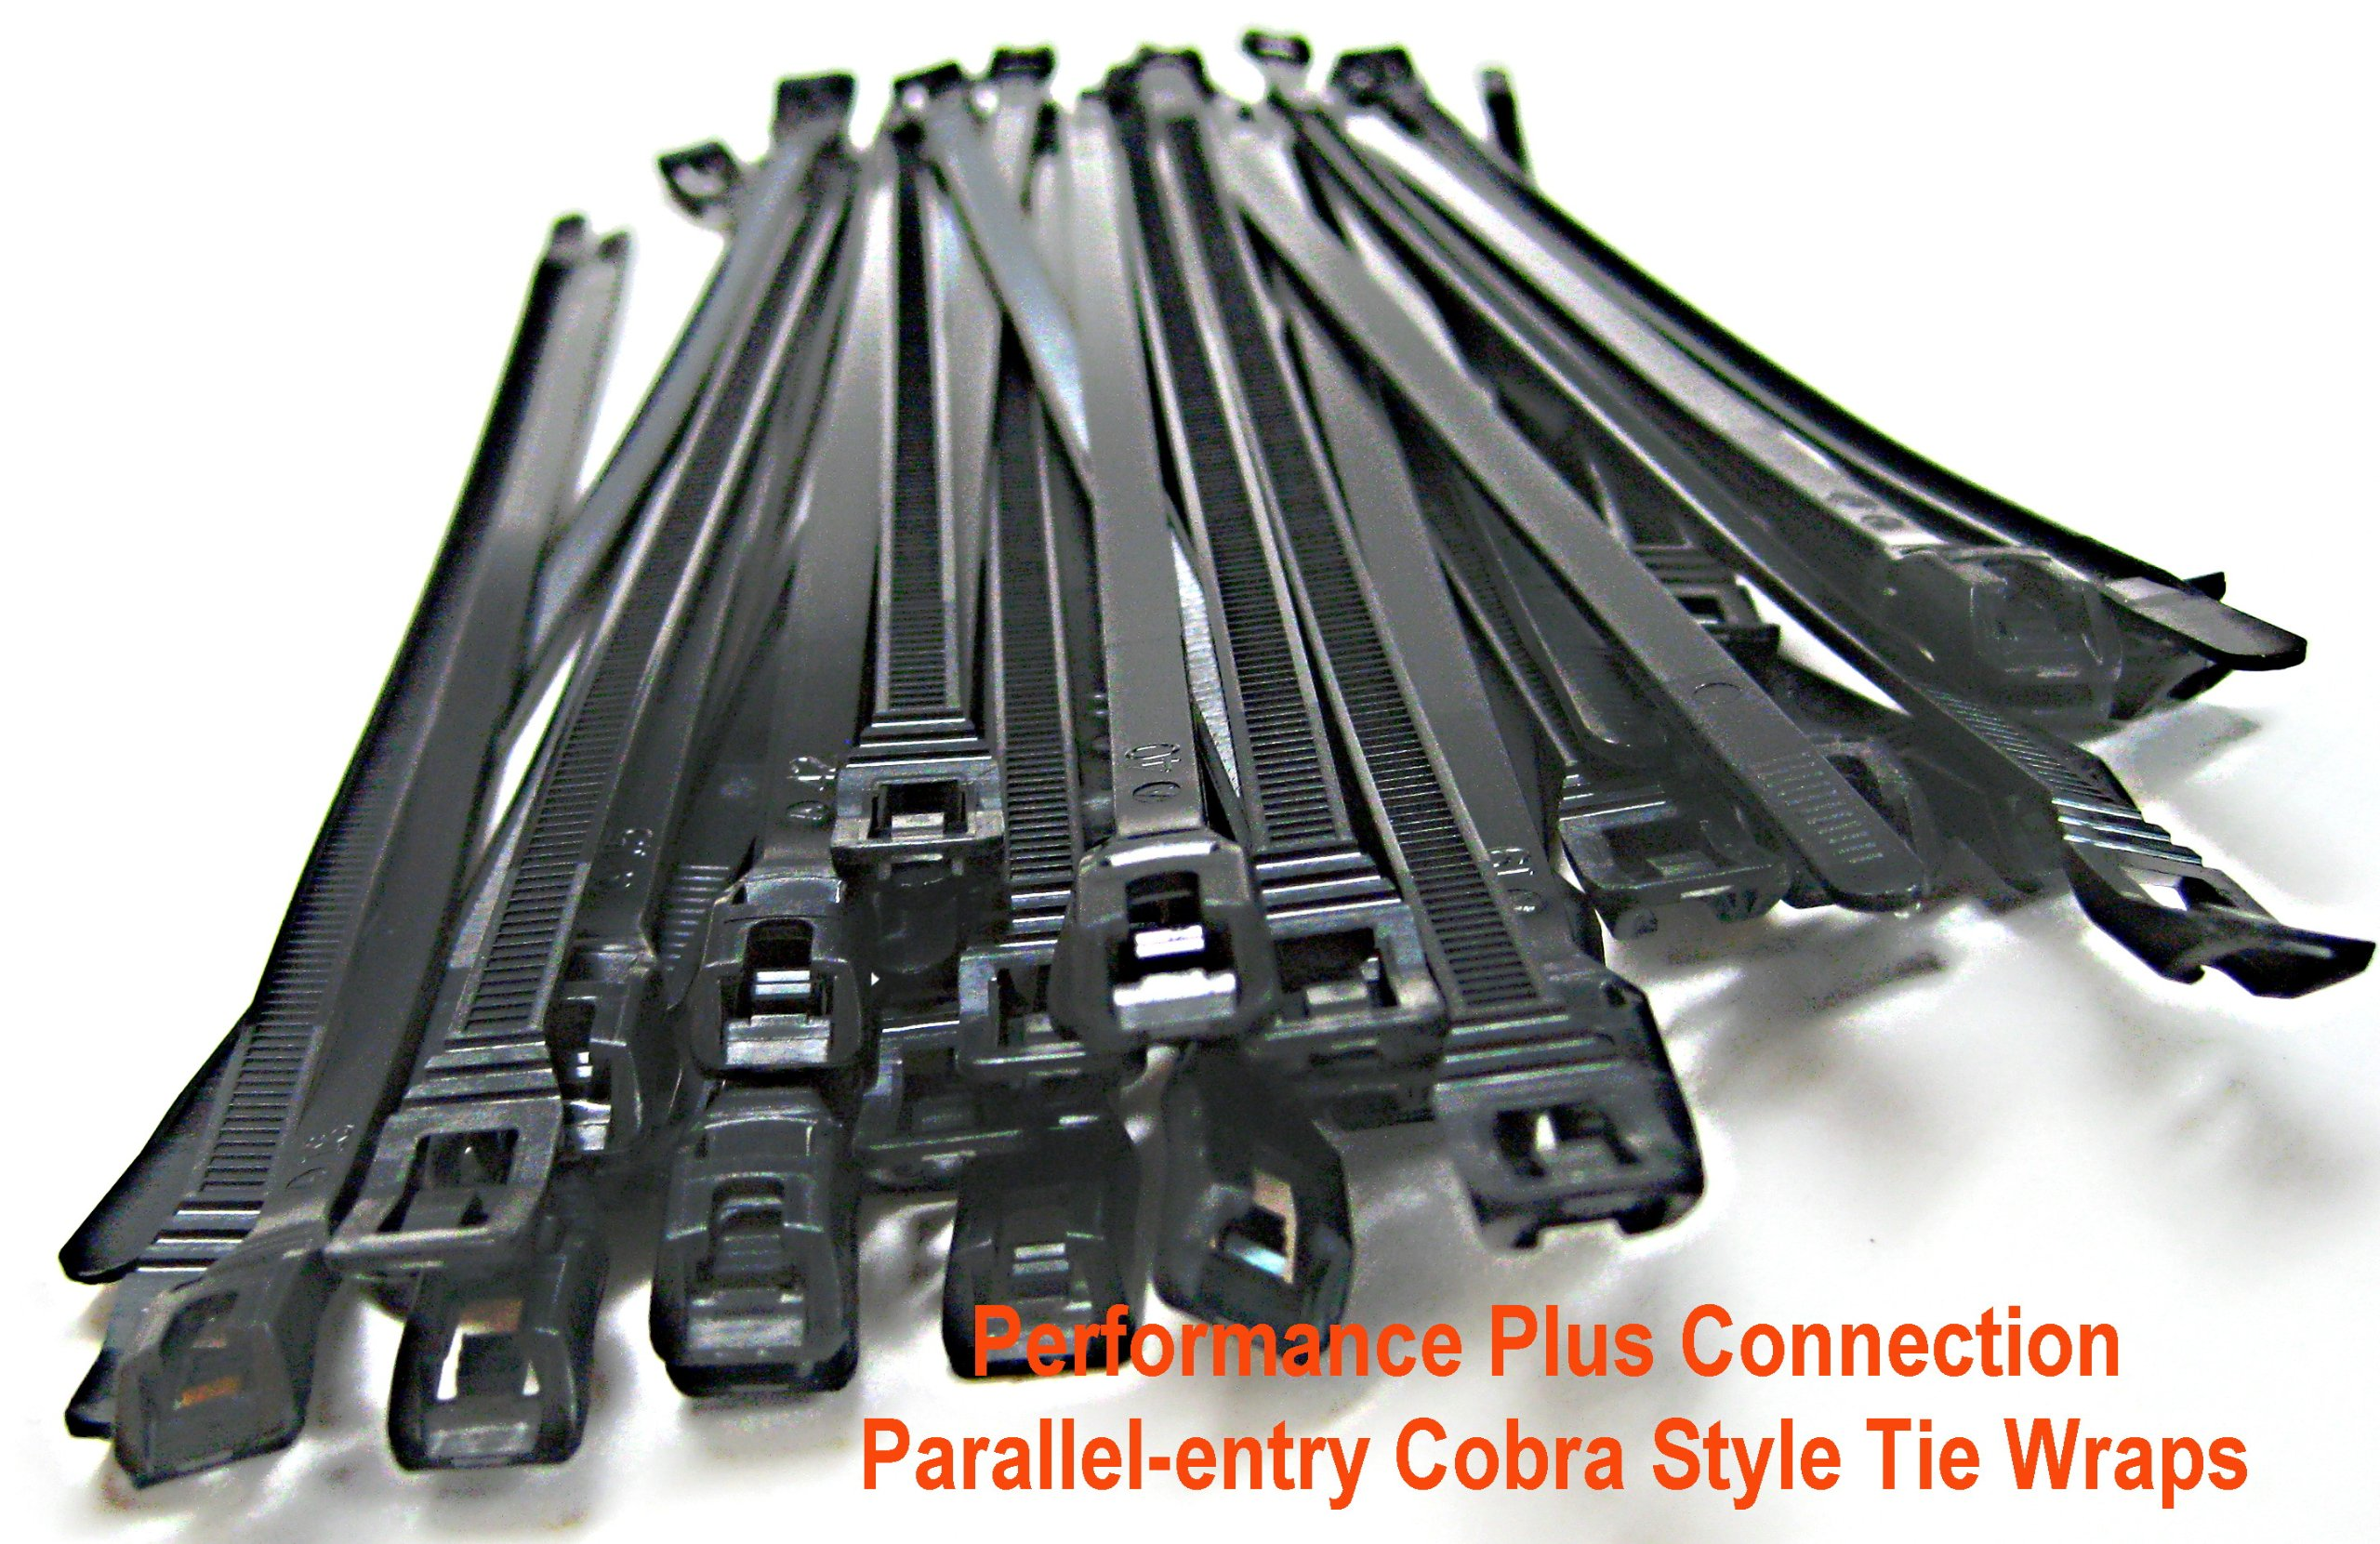 "Nylon Parallel-entry Cobra Style Tie Wraps 7.5"" 50 Pack by Performance Plus Connection"